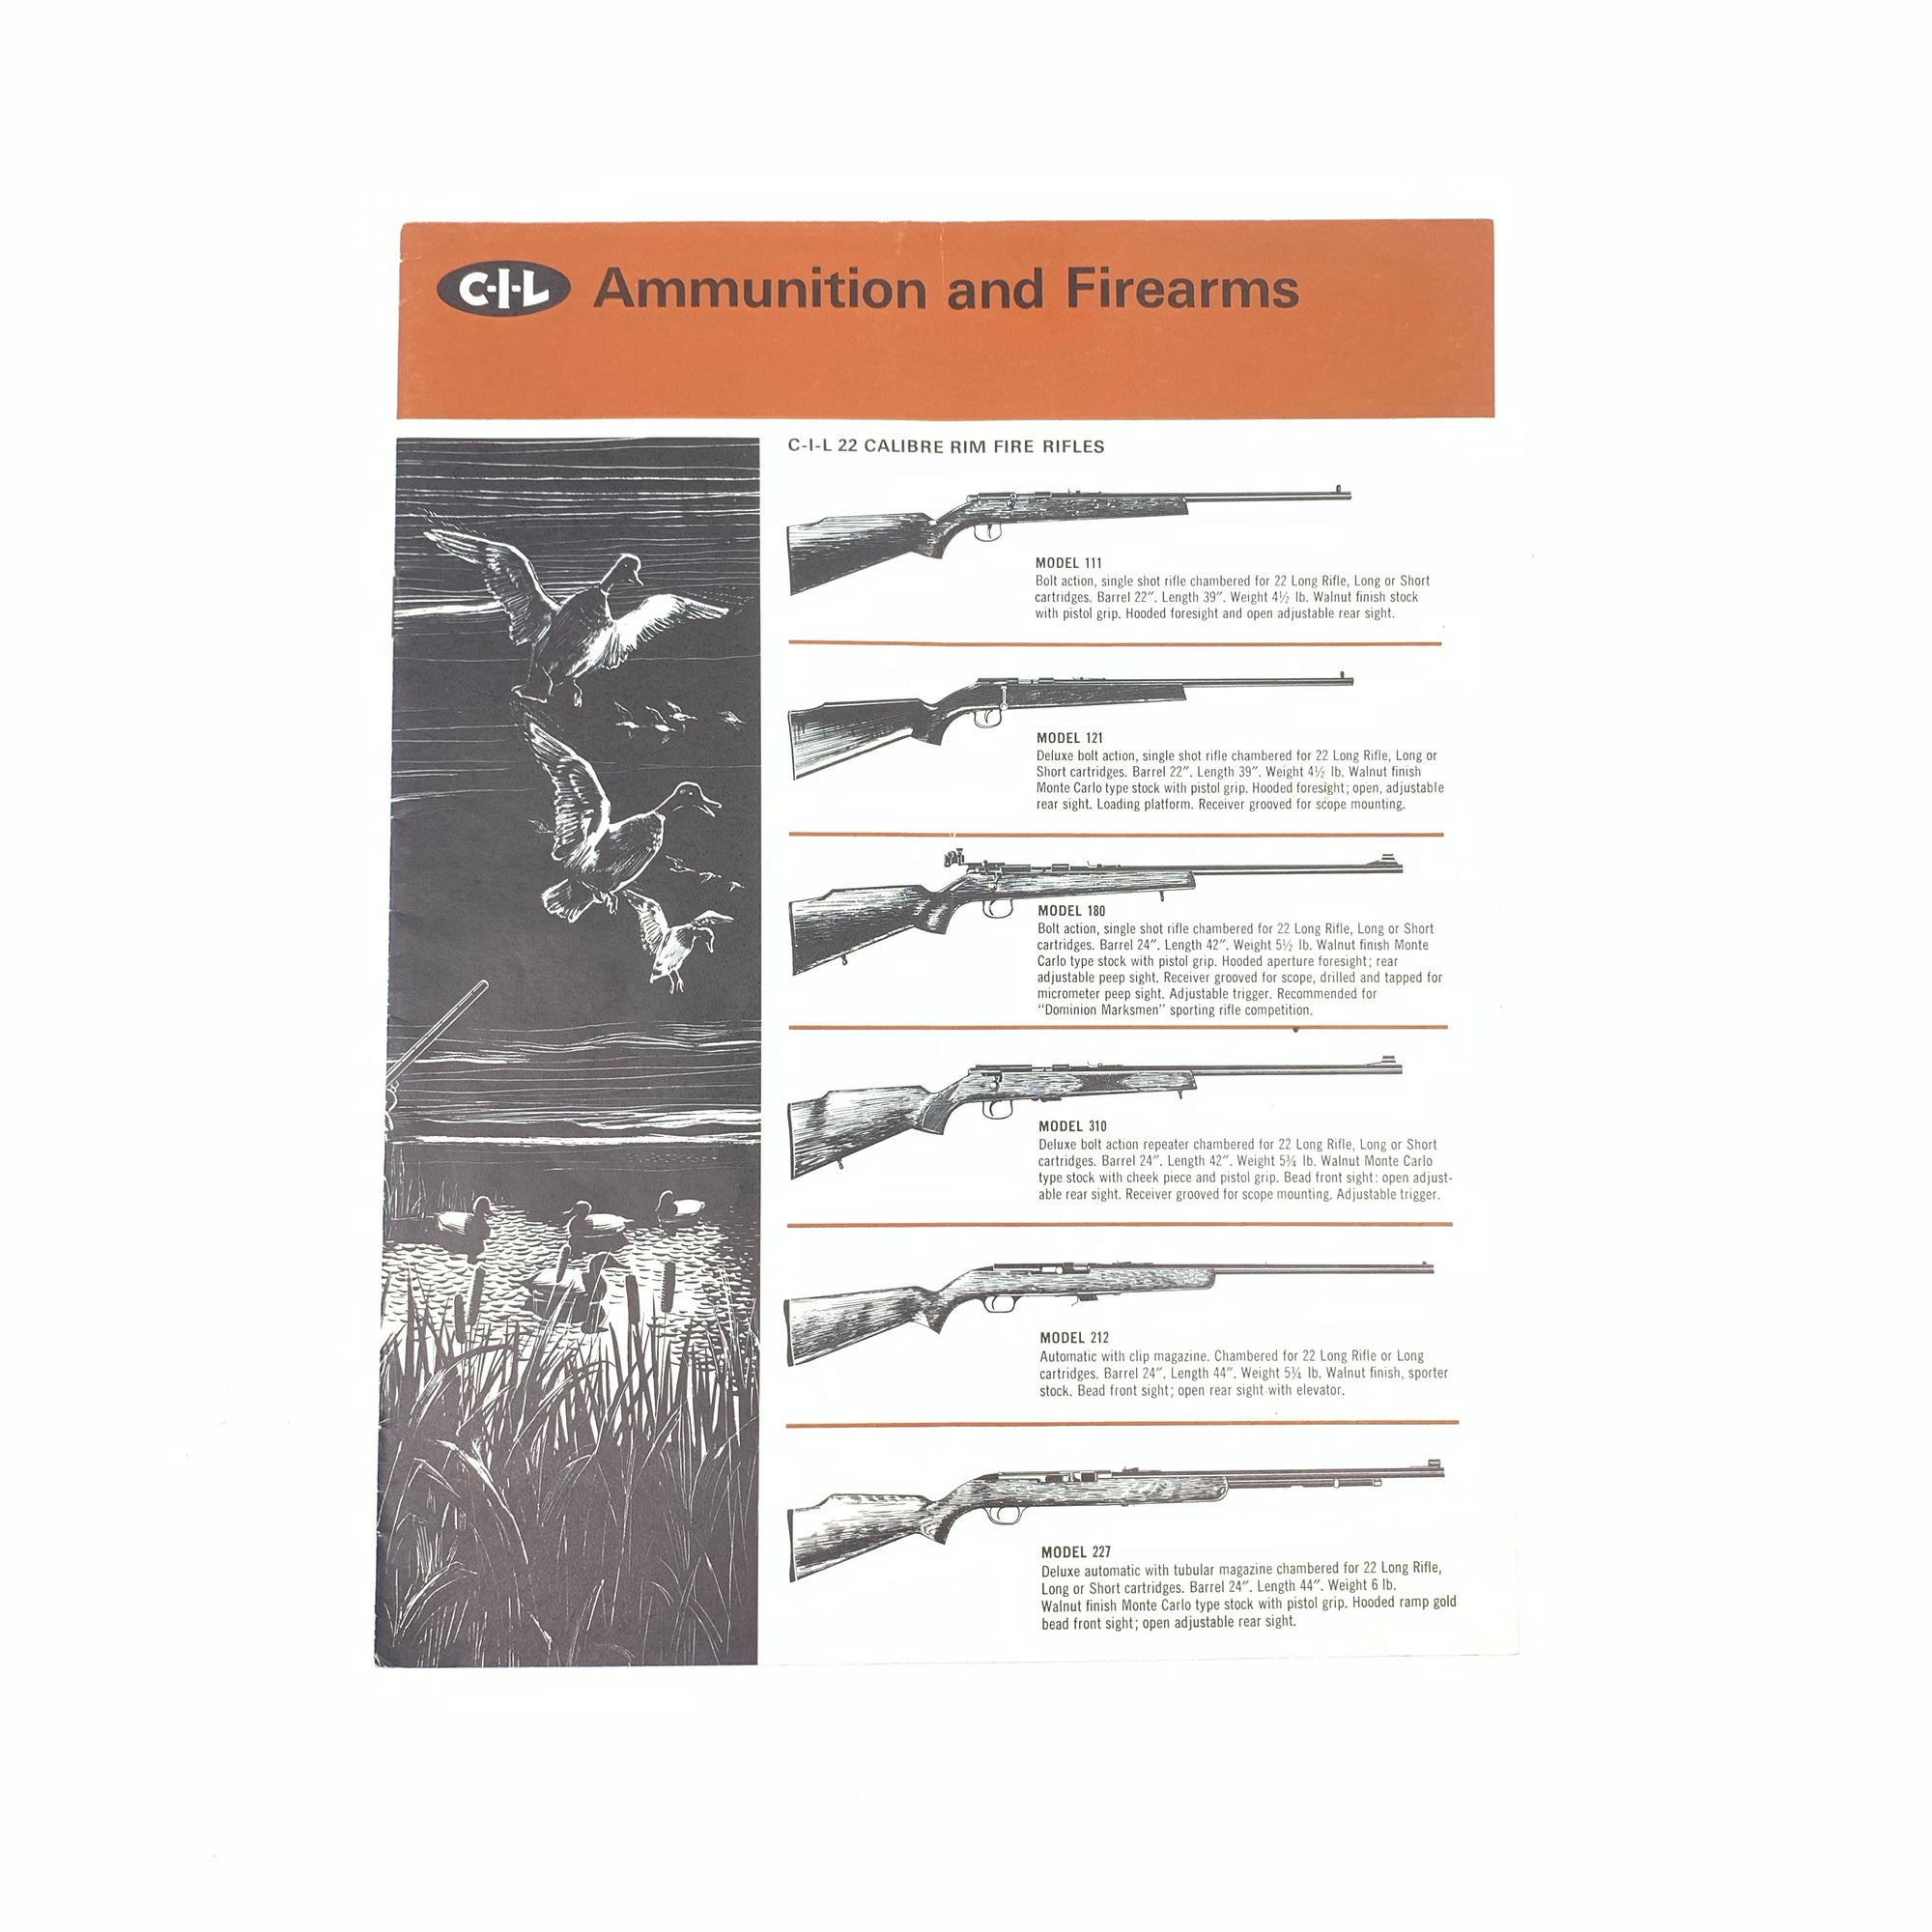 CIL Ammunition and Firearms 1965 SB 12 pages